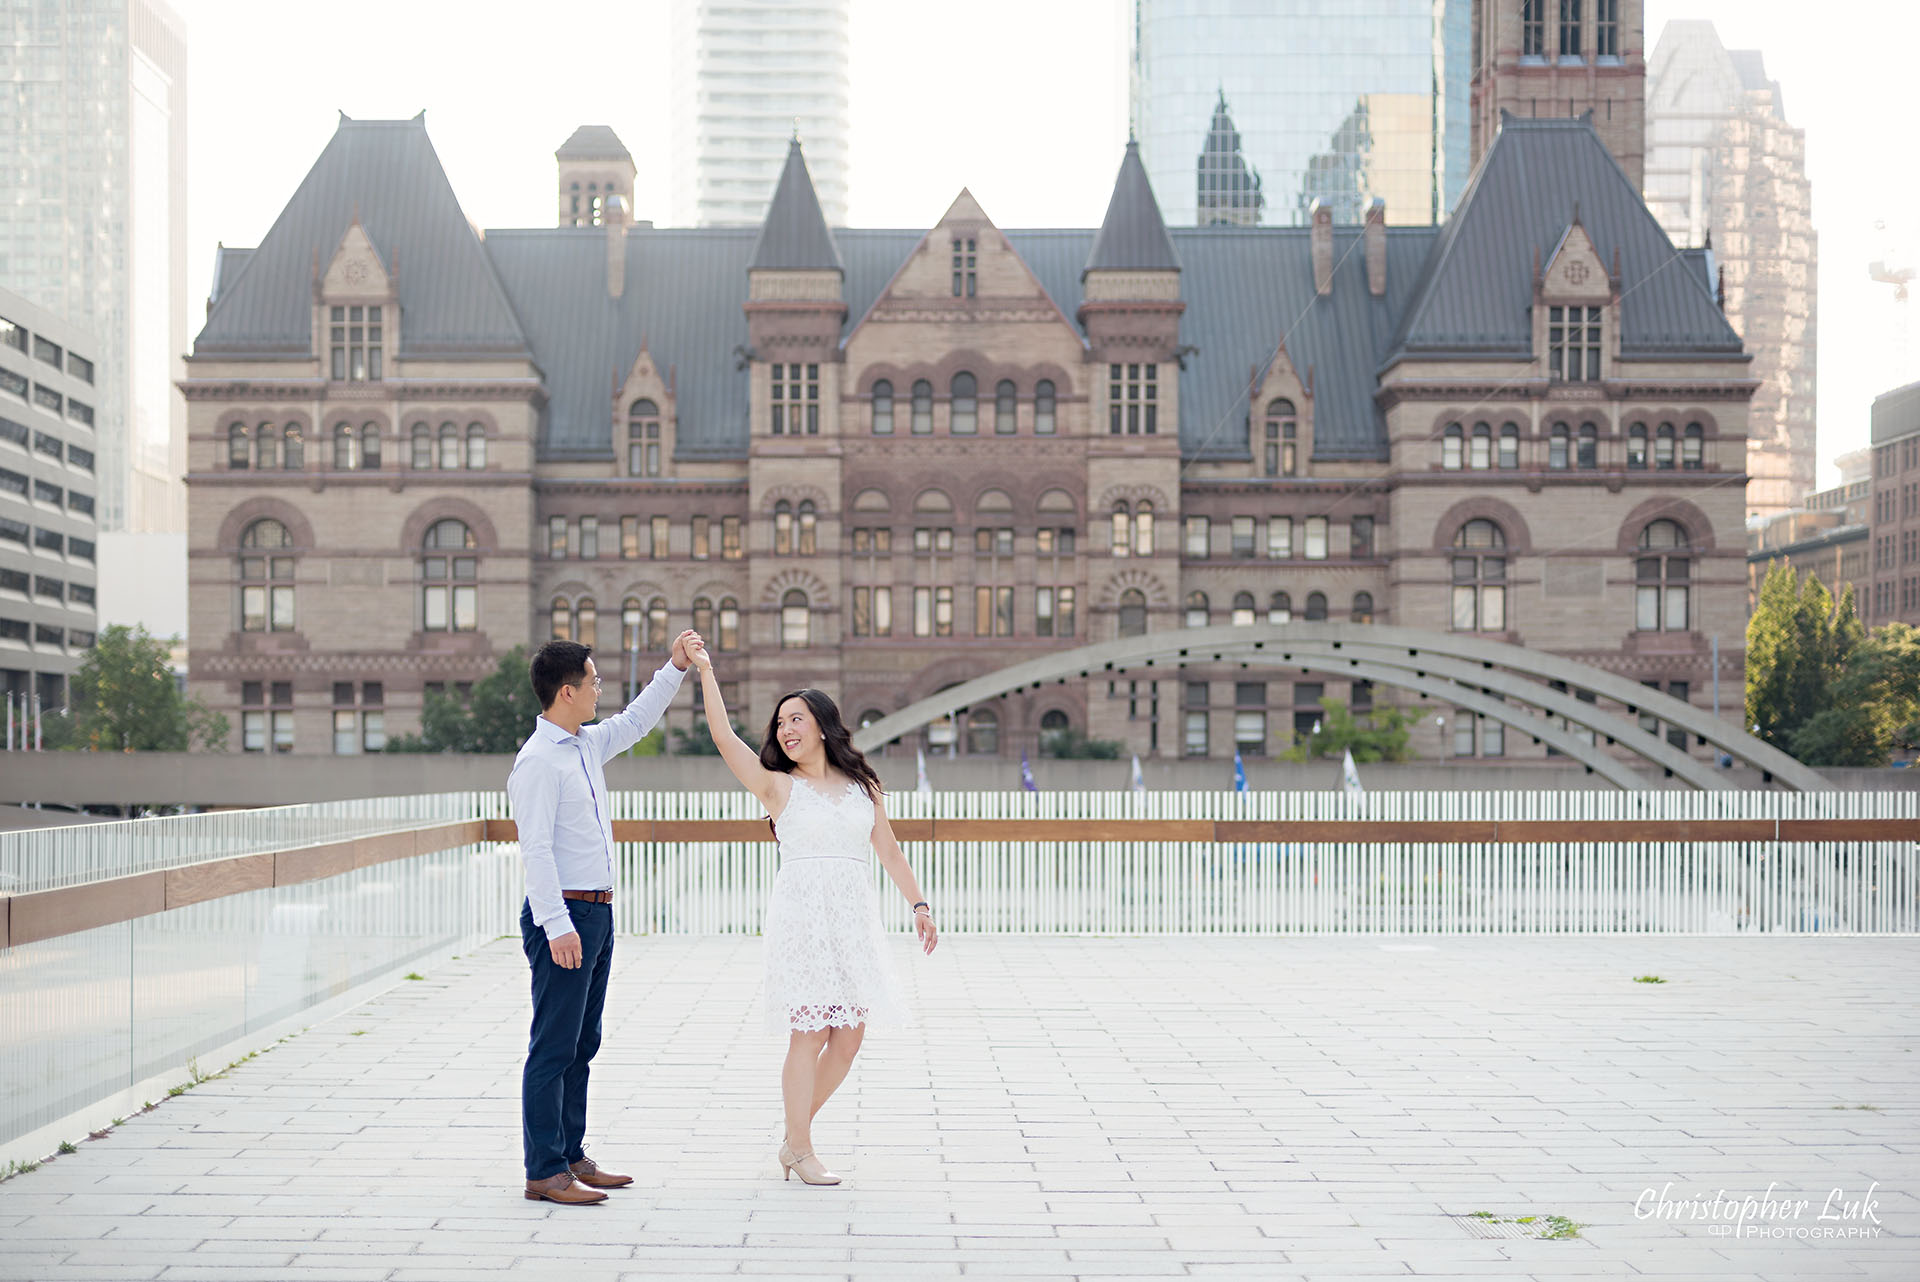 Christopher Luk Wedding Photographer Toronto City Hall Nathan Philips Square Elevated Bridge Arches Archway Bride Groom Holding Hands Walking Together Laughing Dancing Twirl Spin Intimate Natural Candid Photojournalistic Wide Landscape